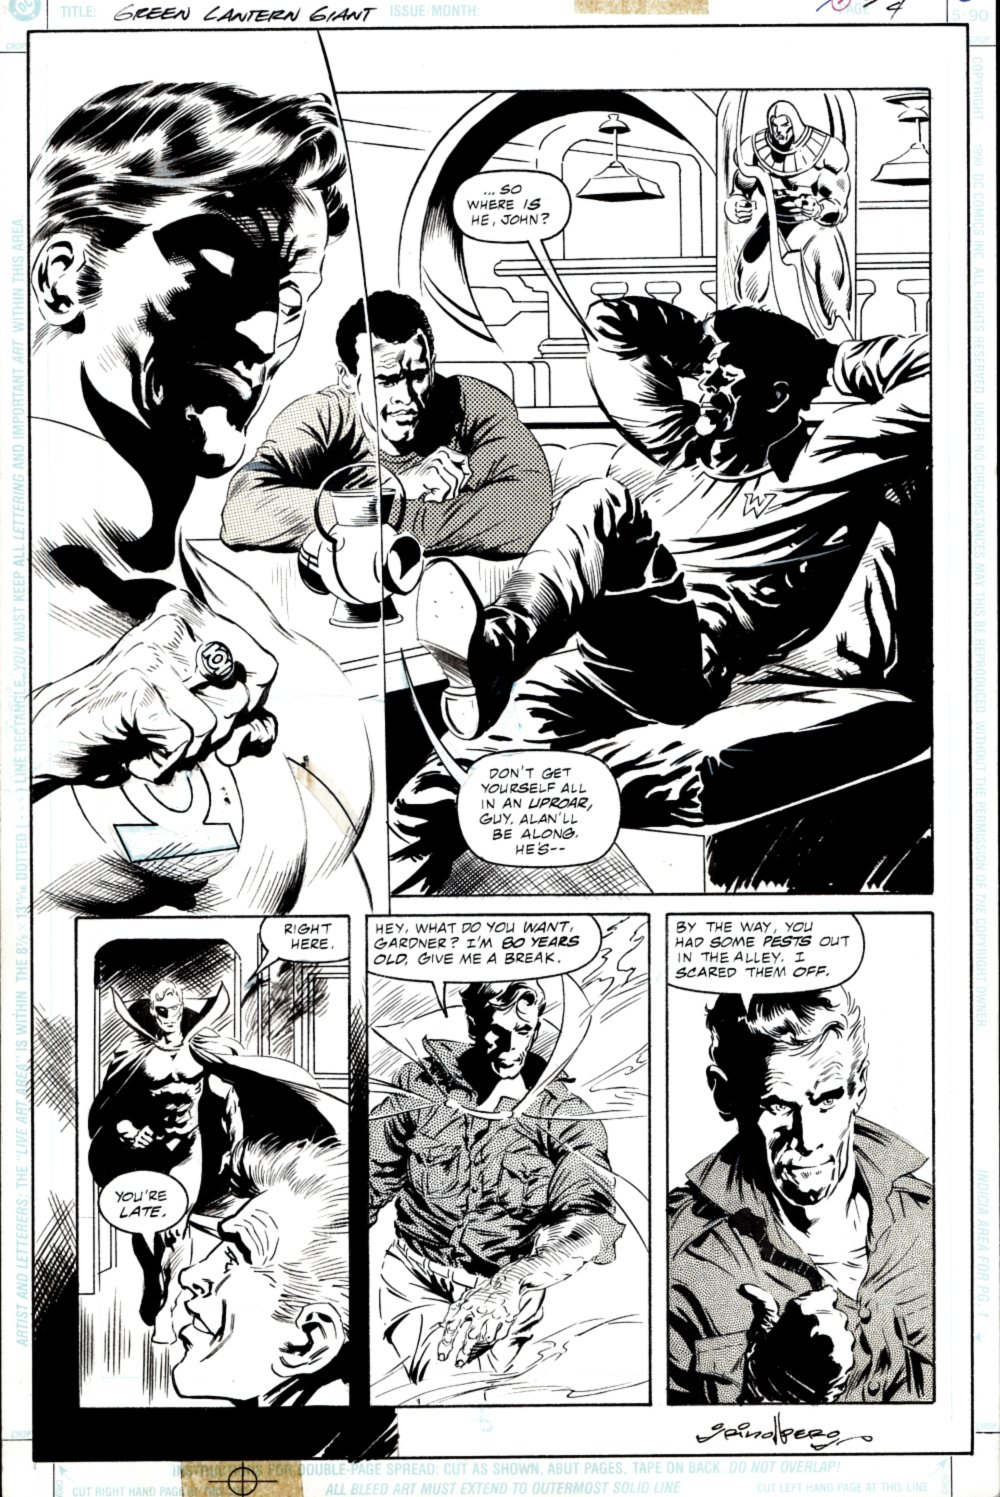 Green Lantern 80-Page Giant #1 p 4 (SOLD LIVE ON THE ROMITAMAN ART DROP PODCAST ON 10-9-2021